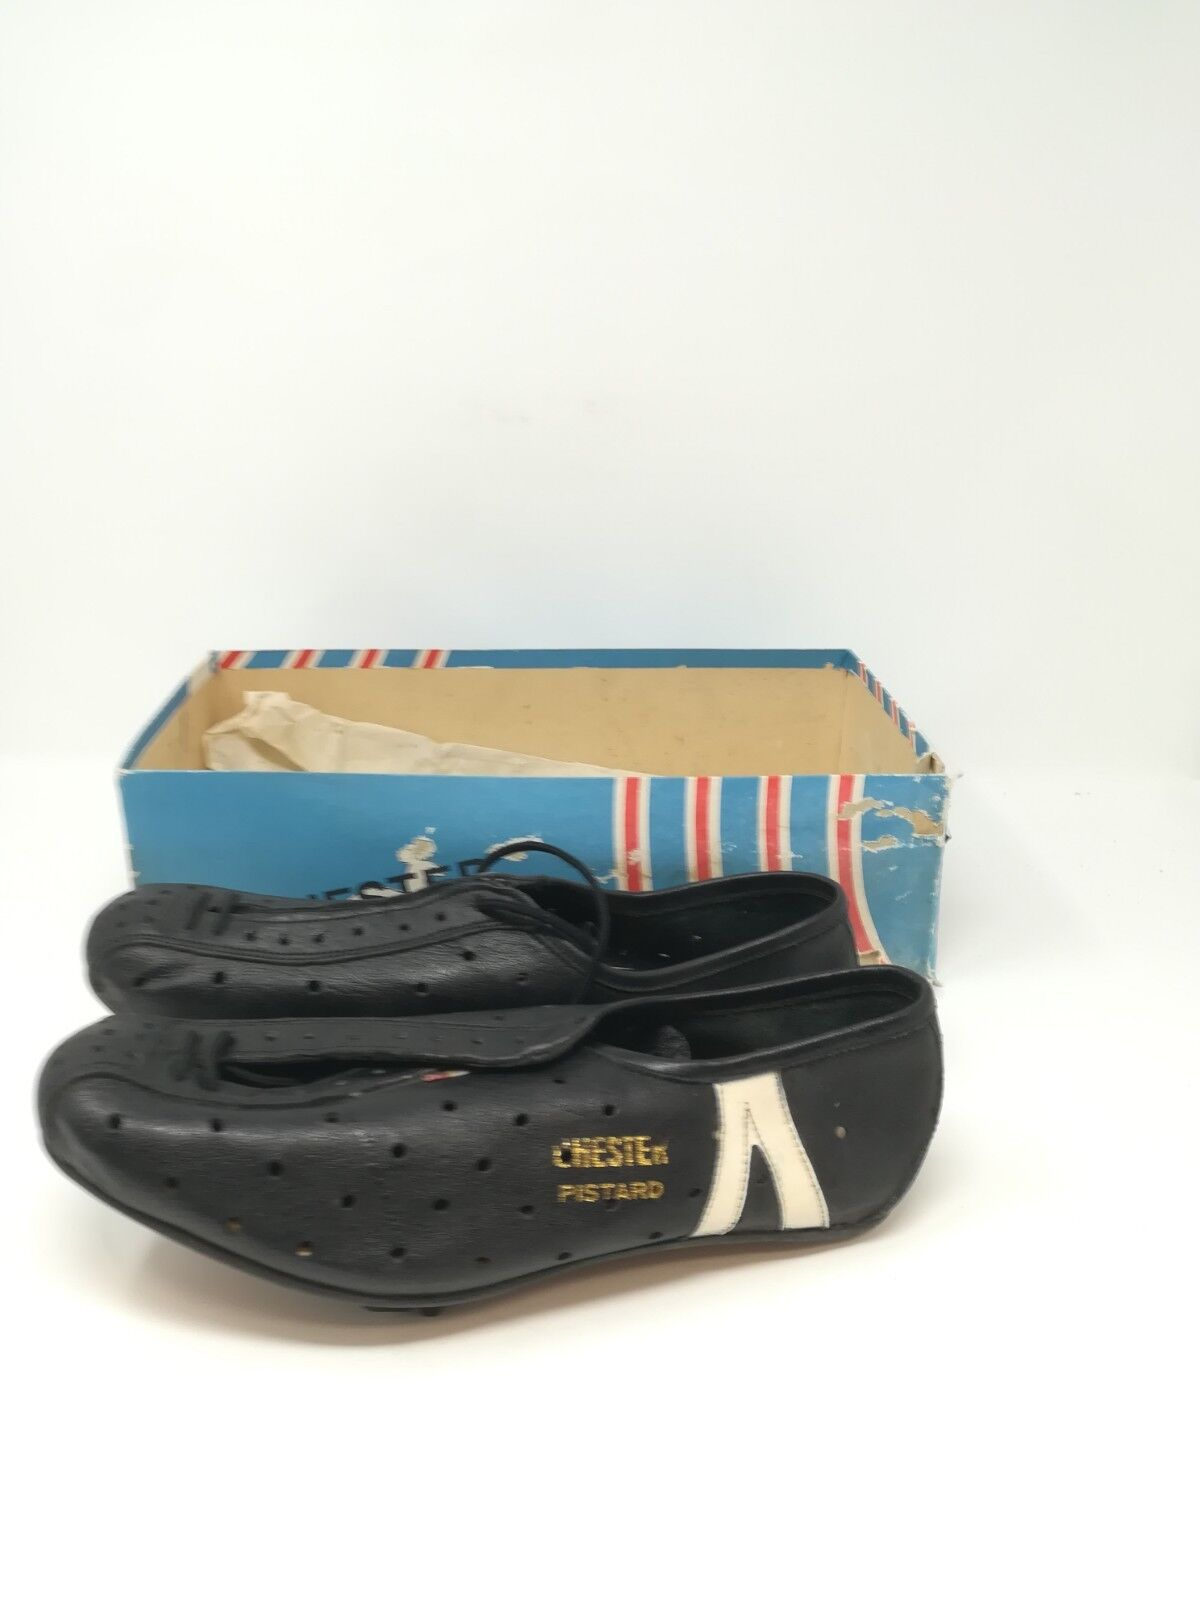 Vintage shoes ciclismo cycling shoes   39 NOS  Chester Pistard